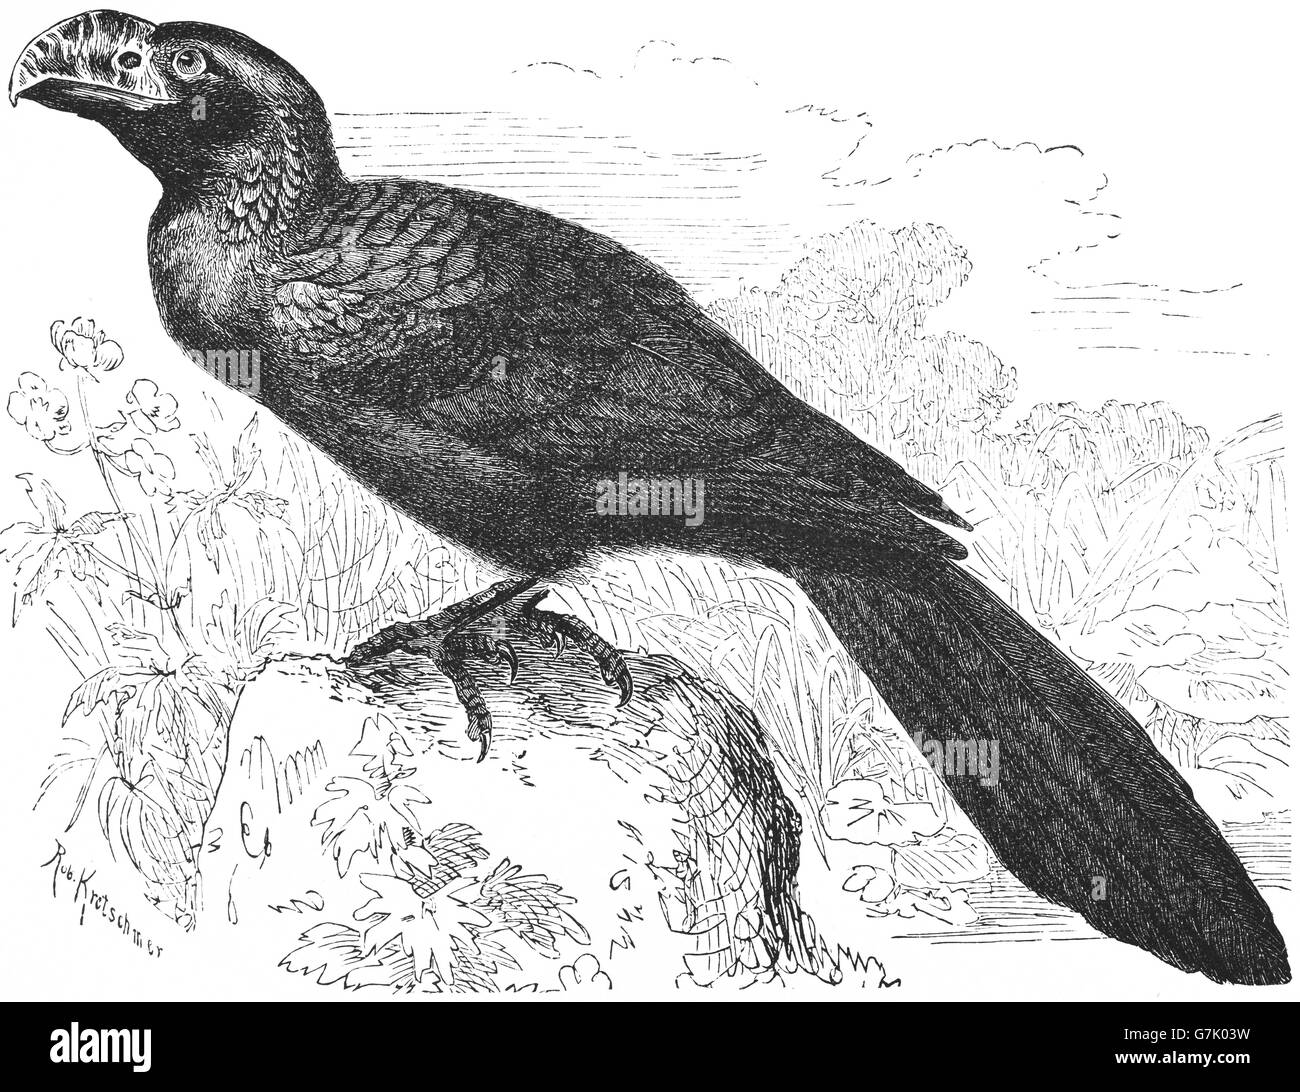 Smooth-billed ani, Crotophaga ani, illustration from book dated 1904 - Stock Image